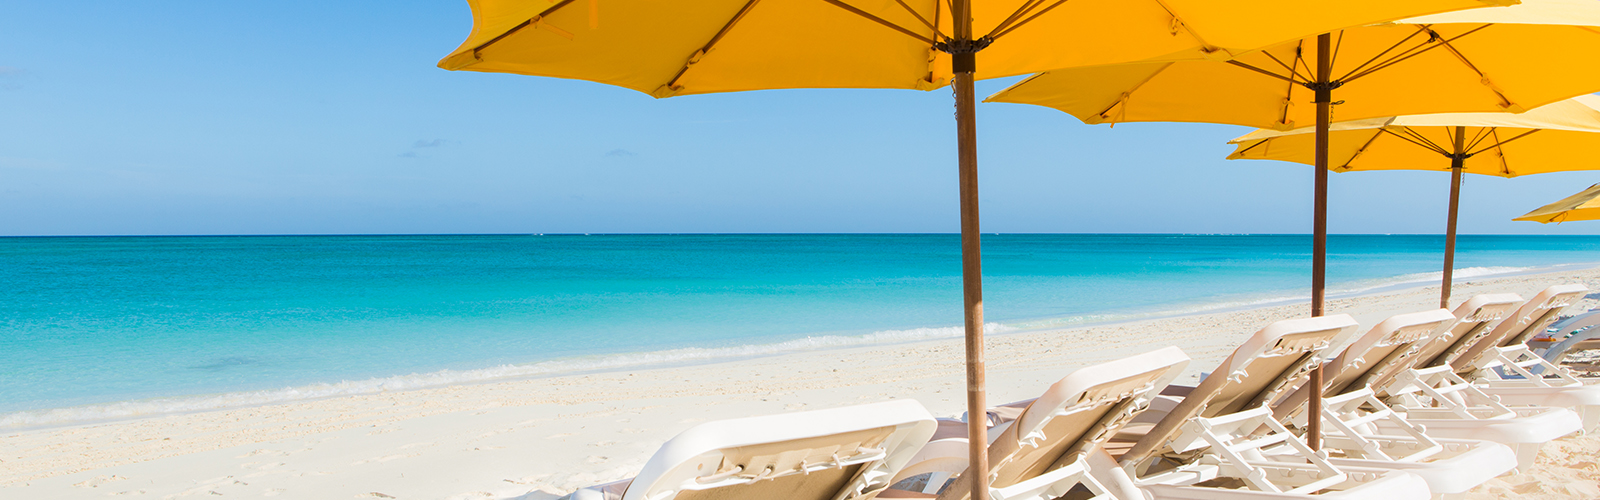 pool chairs and umbrellas along white sand and ocean